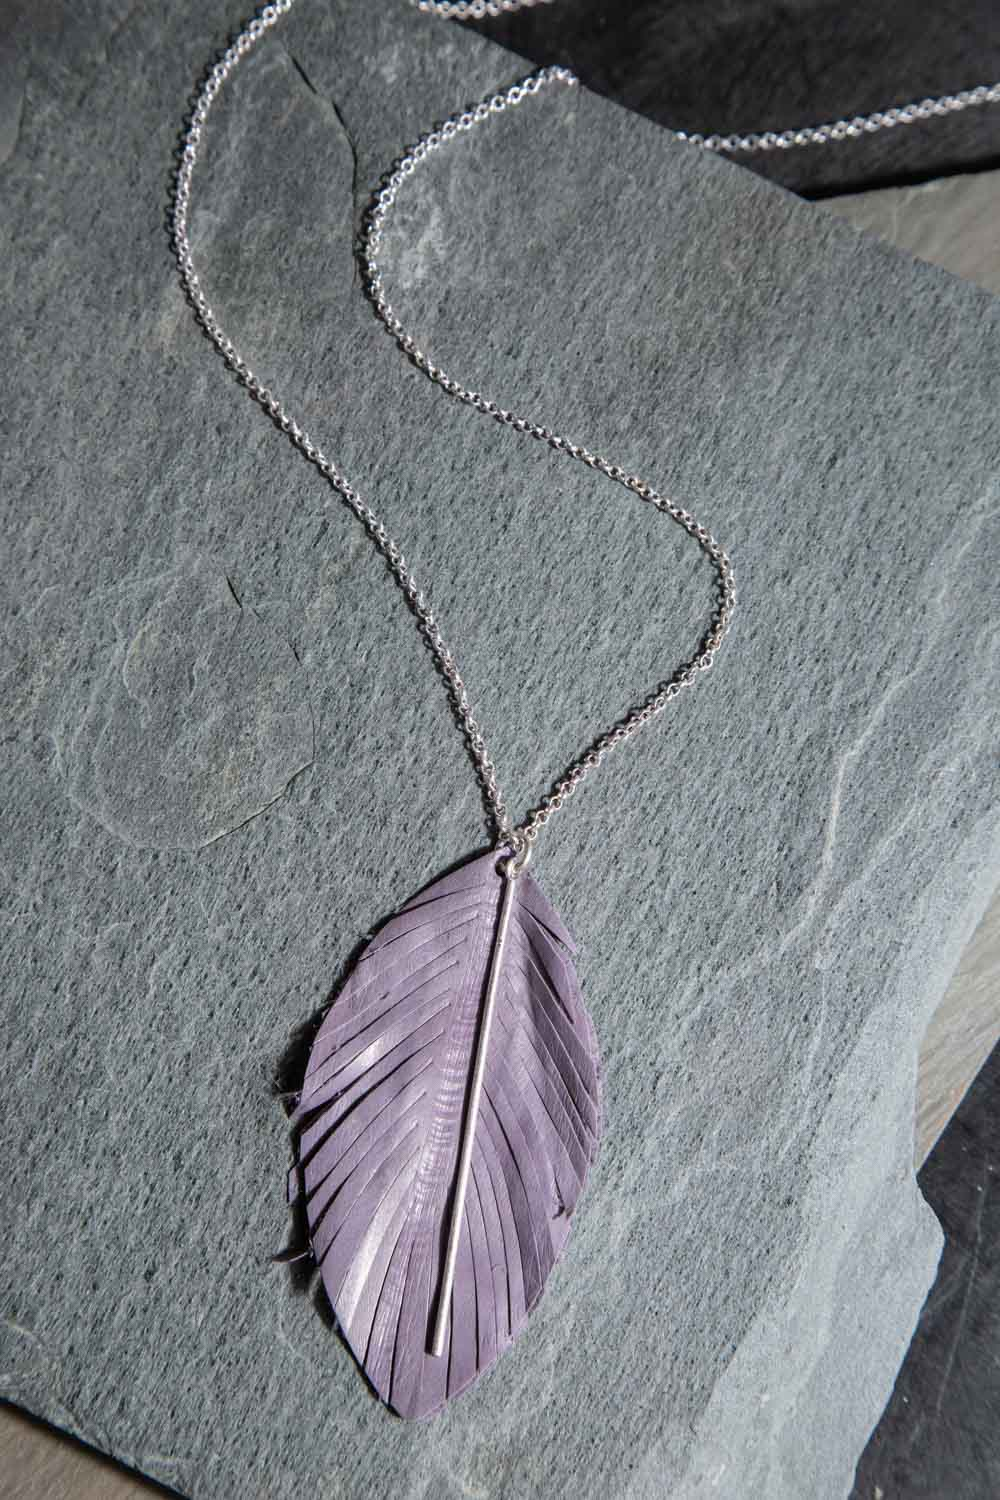 Type 2 Gentle Breeze Necklace